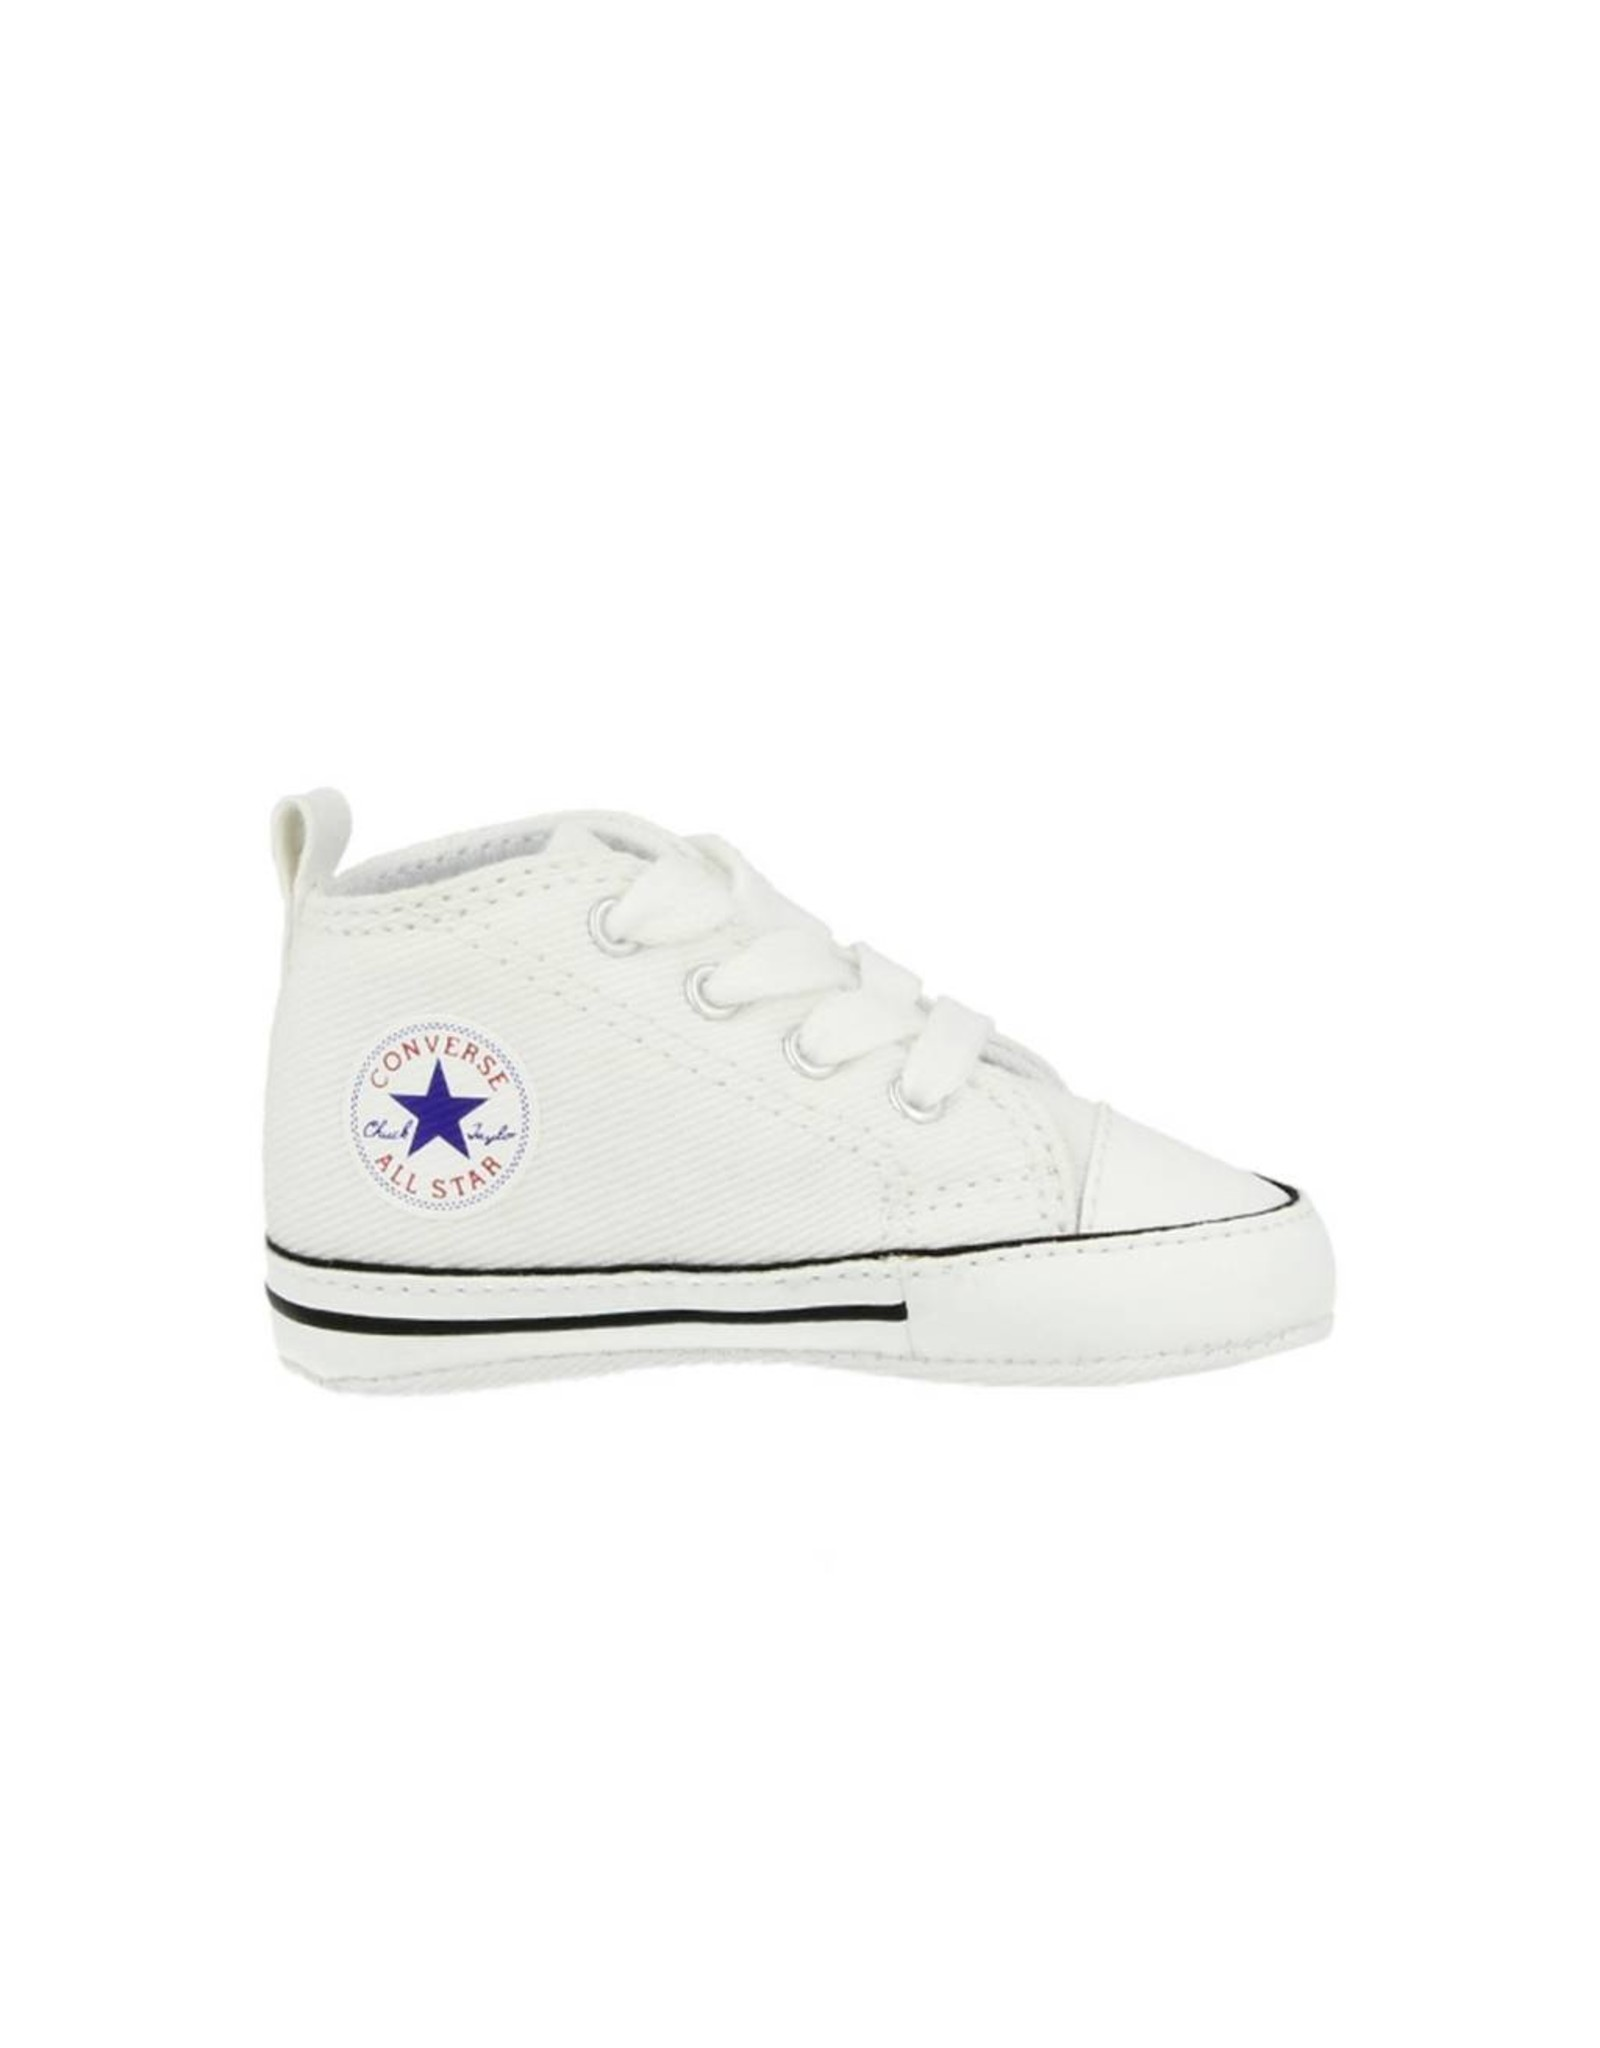 CONVERSE CHUCK TAYLOR FIRST STAR WHITE C12OP-88877